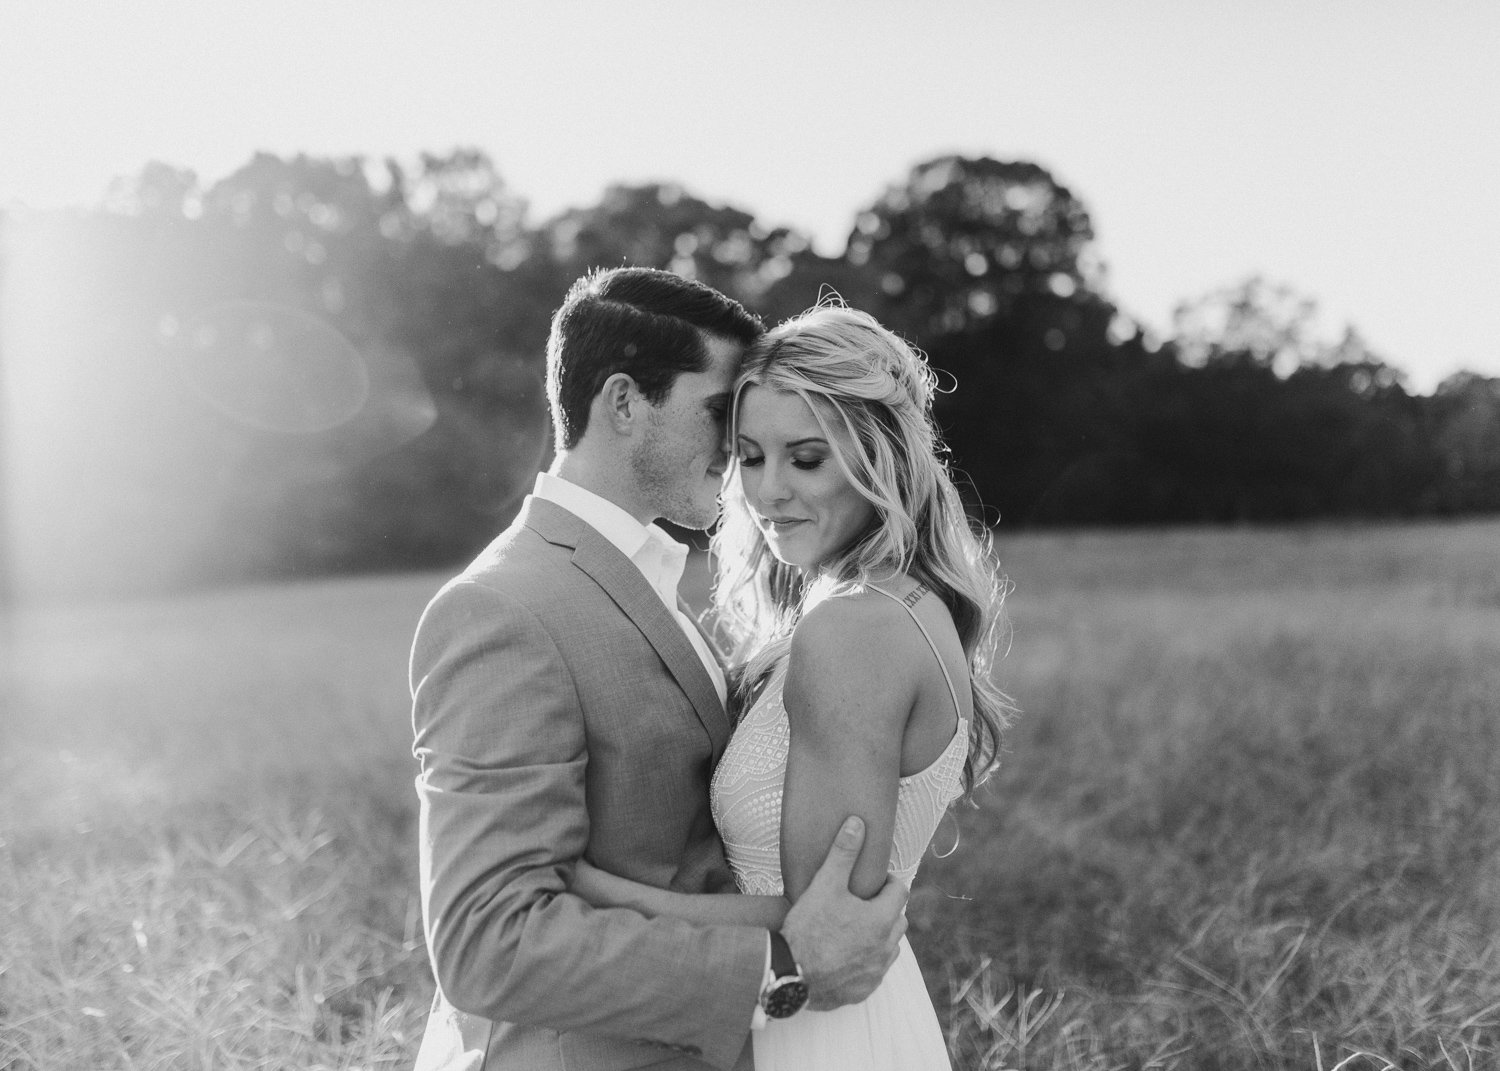 northcarolinaweddingphotographer-86